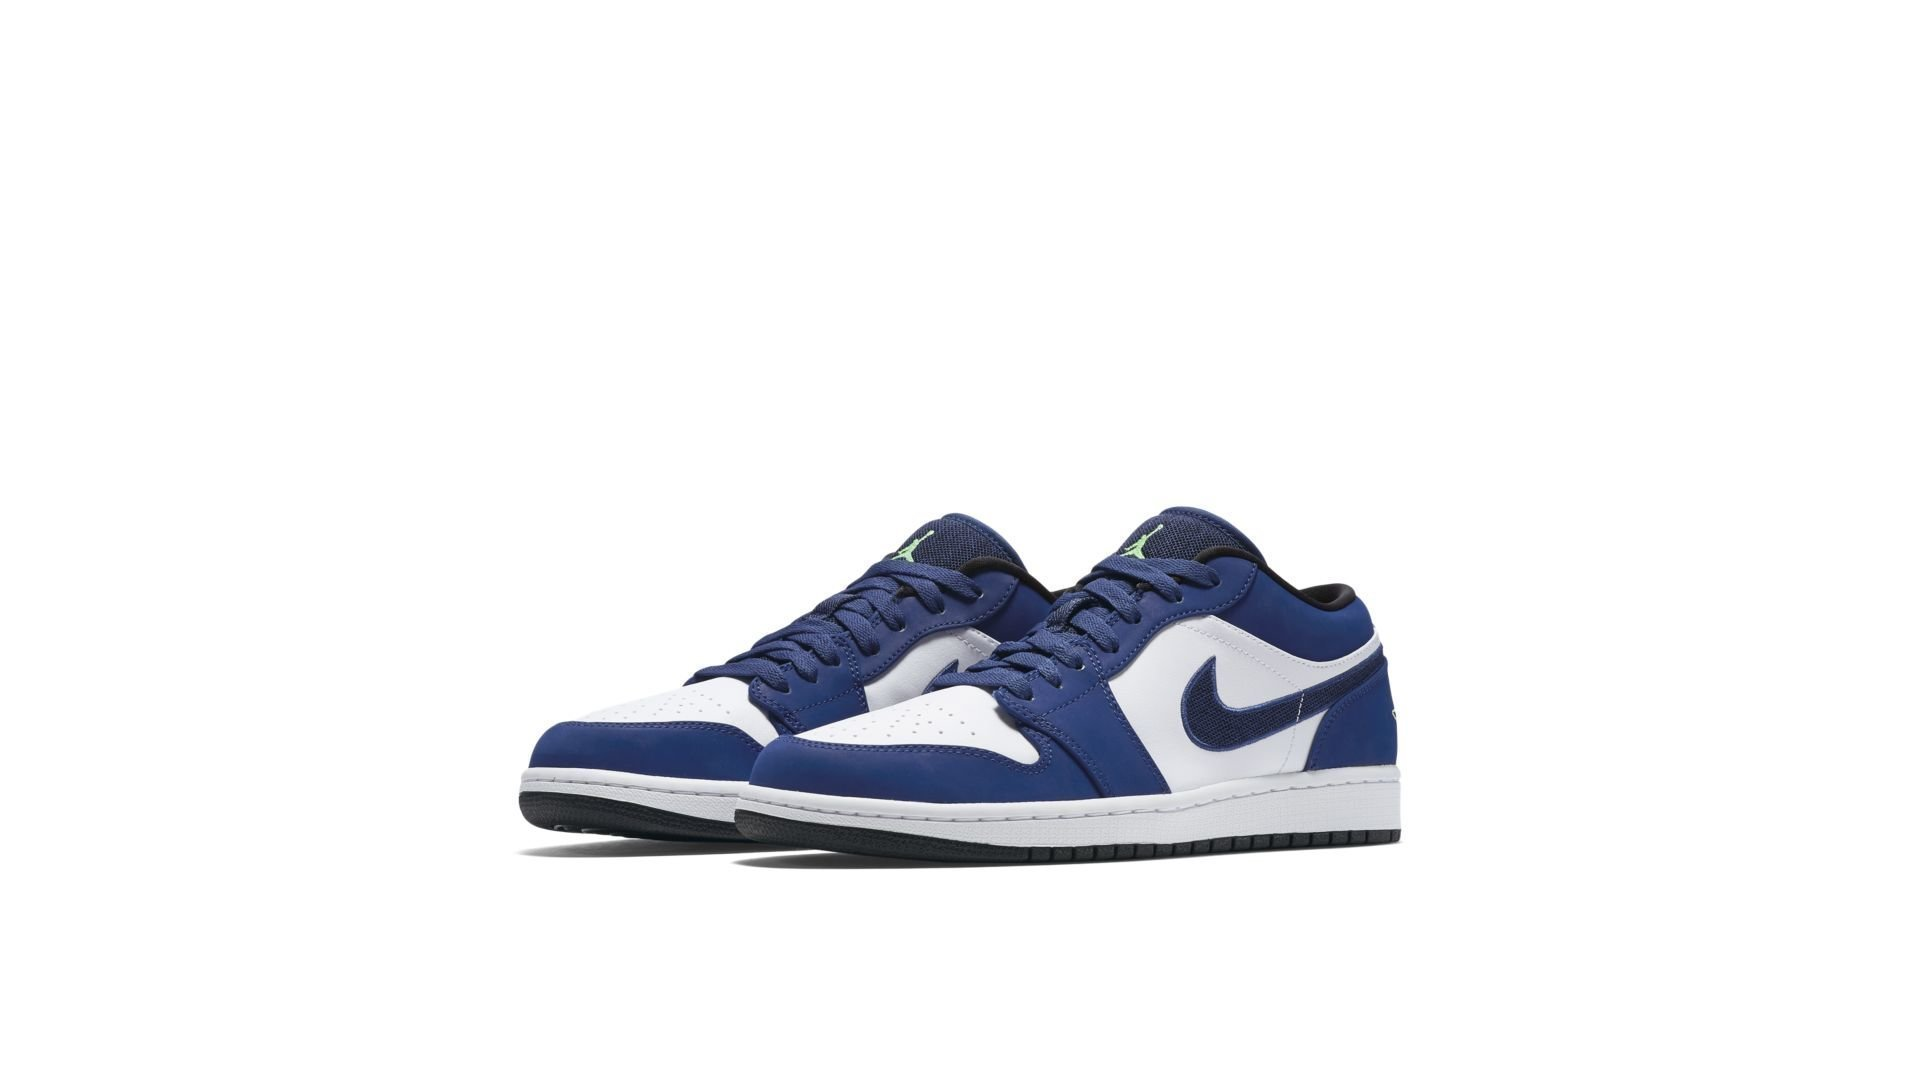 Jordan 1 Low Insignia Blue (553558-405)